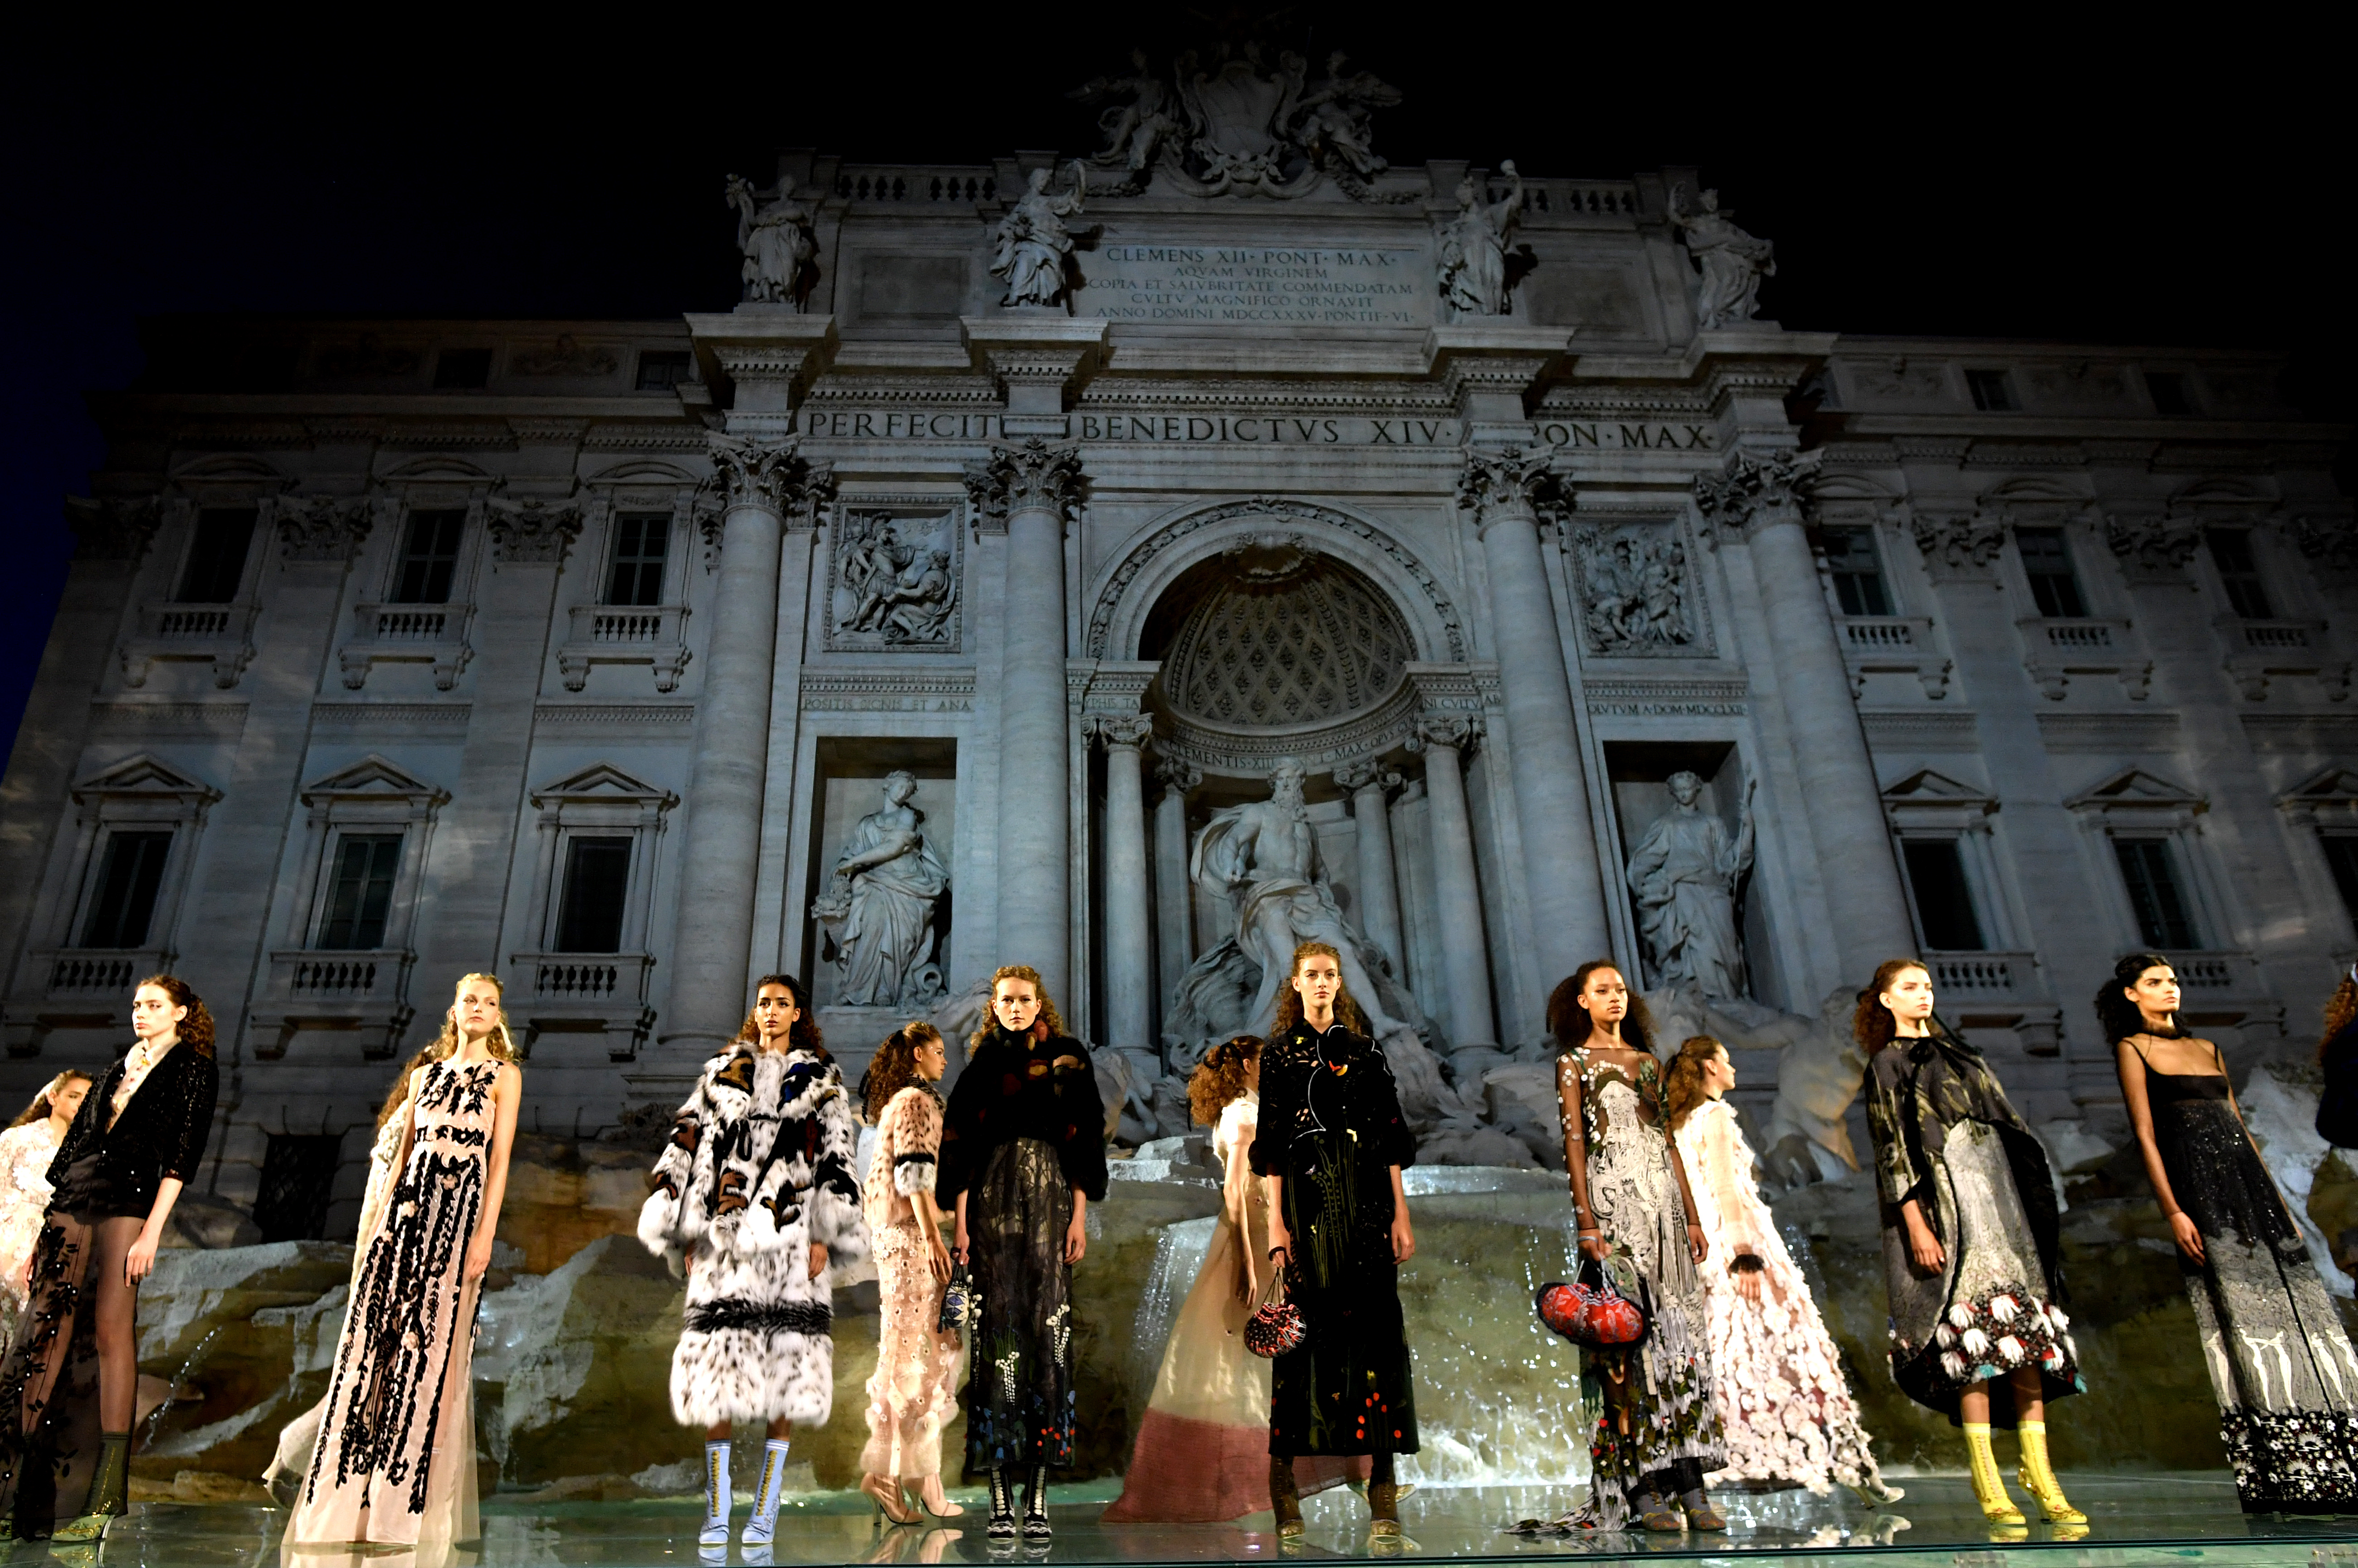 Models present creations by Fendi during a fashion show at the Trevi Fountain in Rome on July 7, 2016 to celebrate the 90th anniversary of the fashion house. / AFP PHOTO / TIZIANA FABI